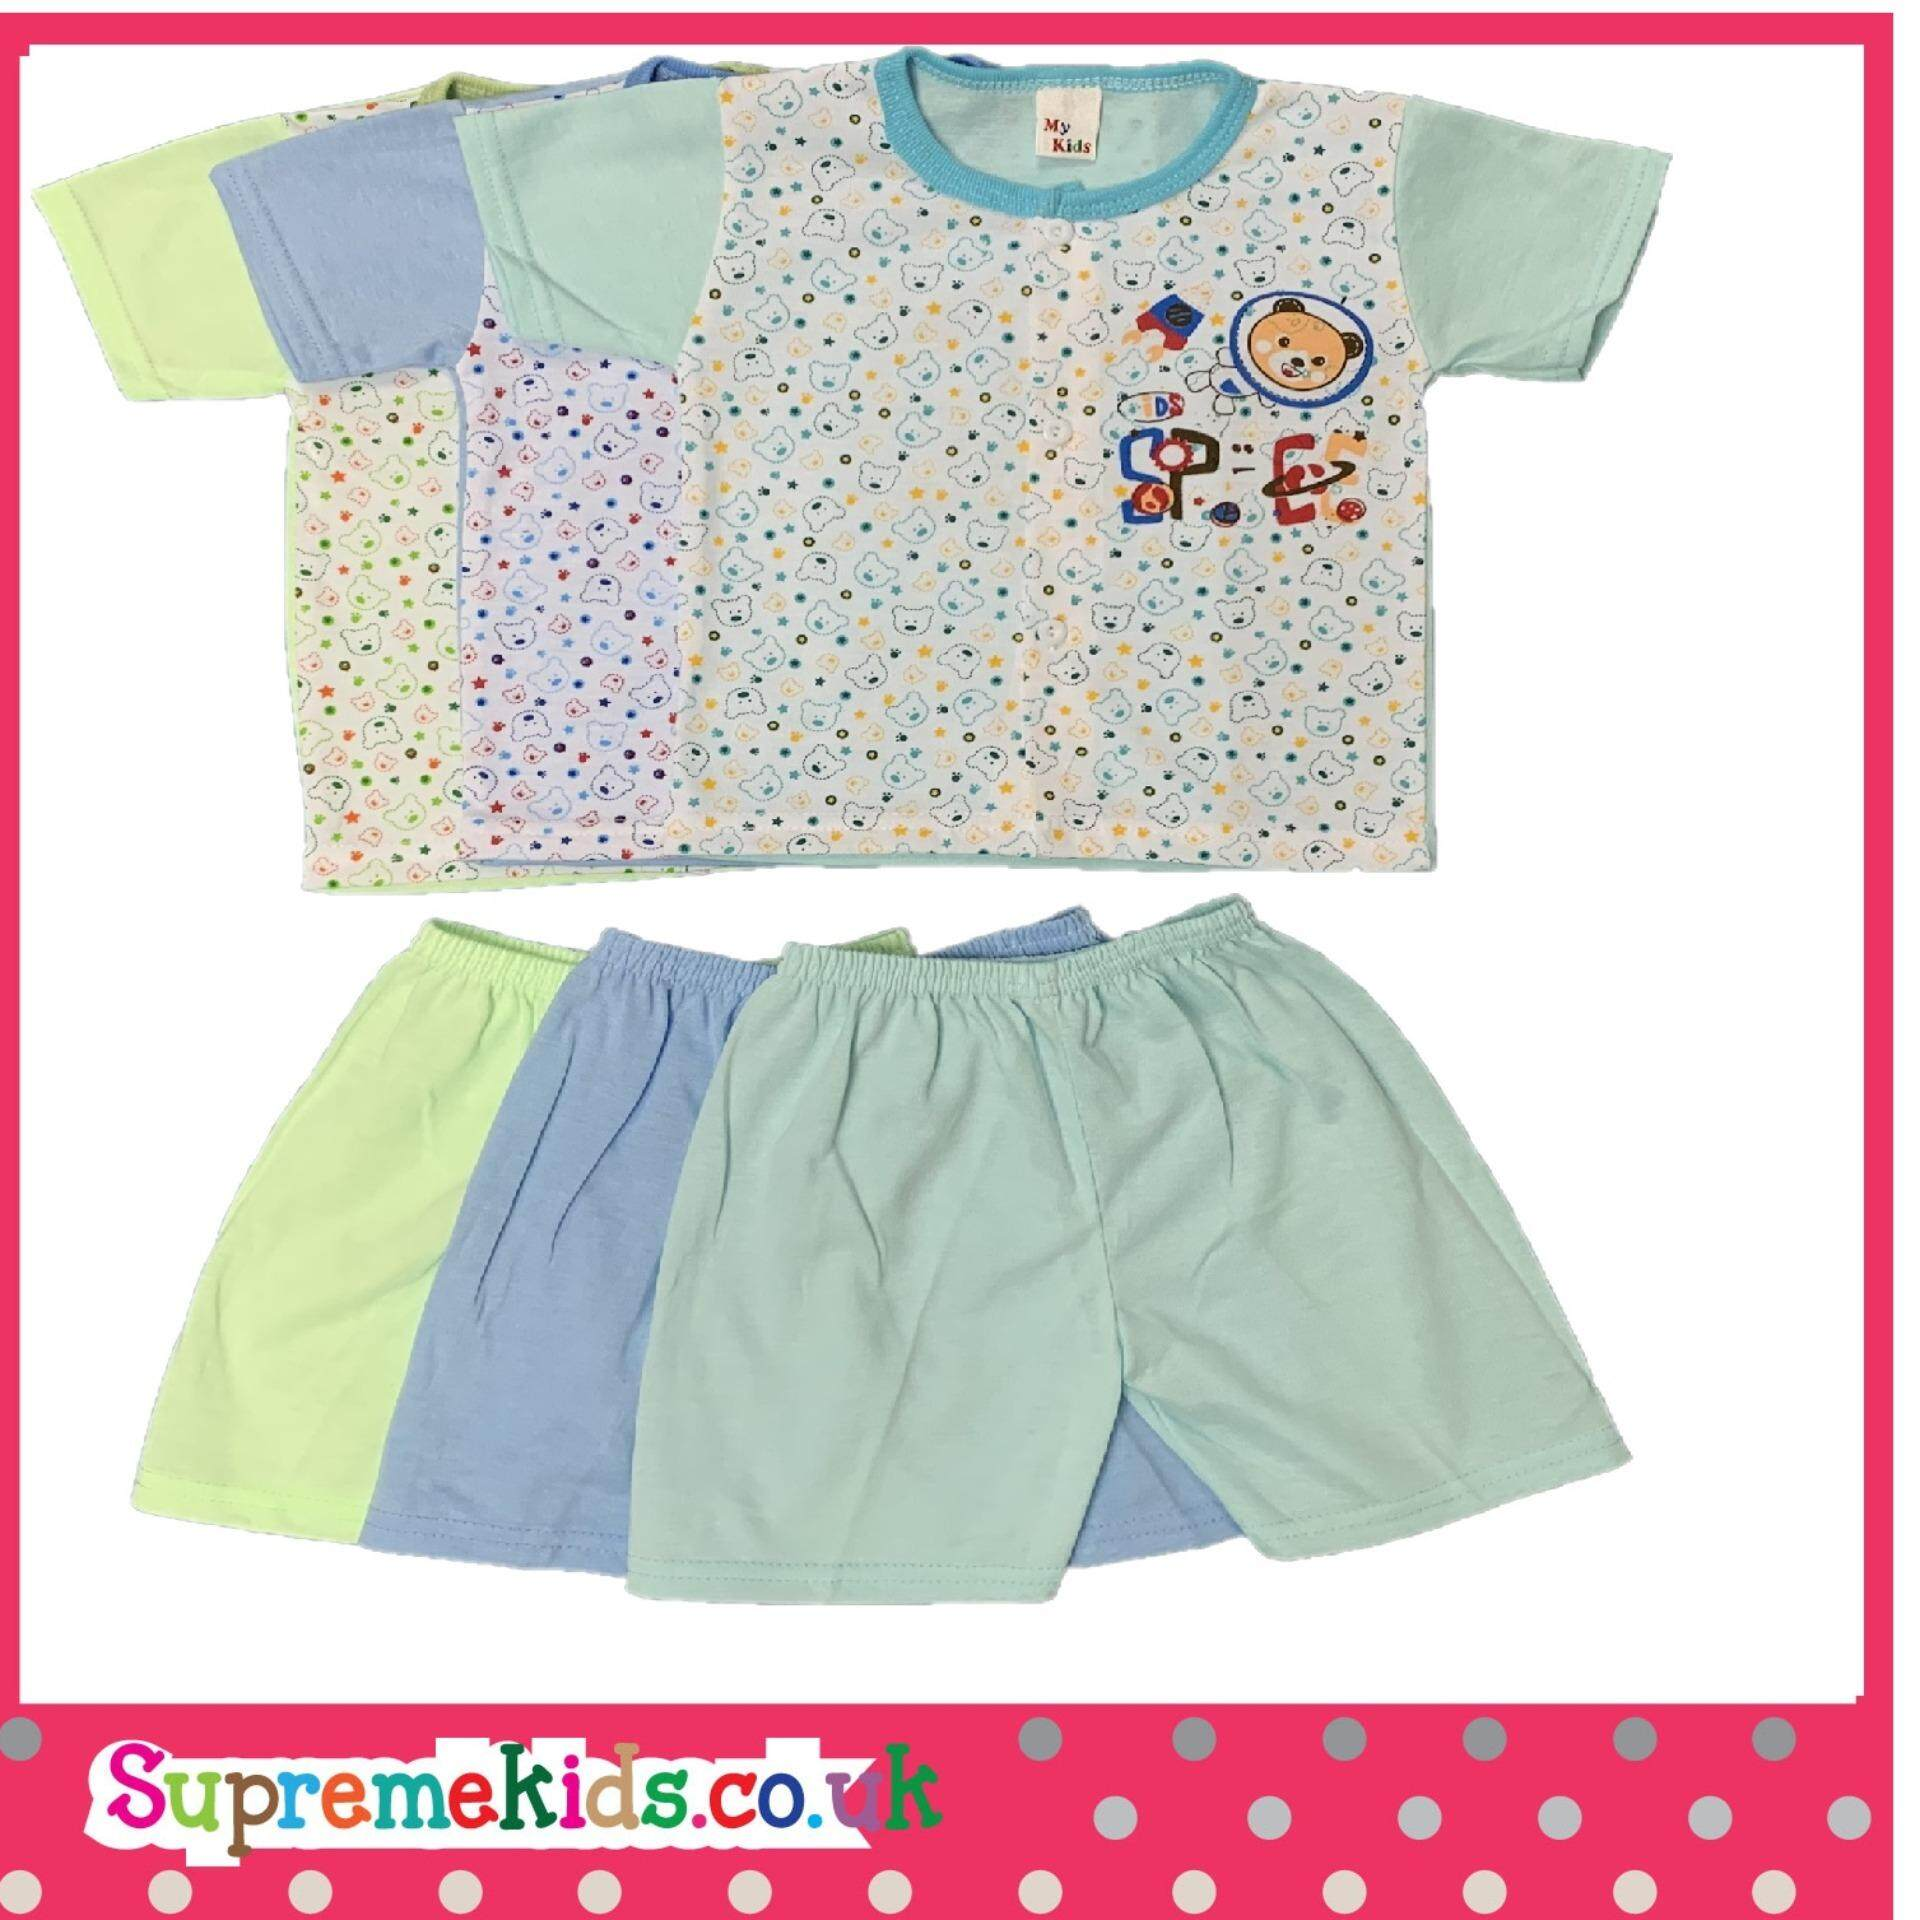 6 Pcs Space Bear NewBorn & Infant SSSP Casual wear up to 12Mth